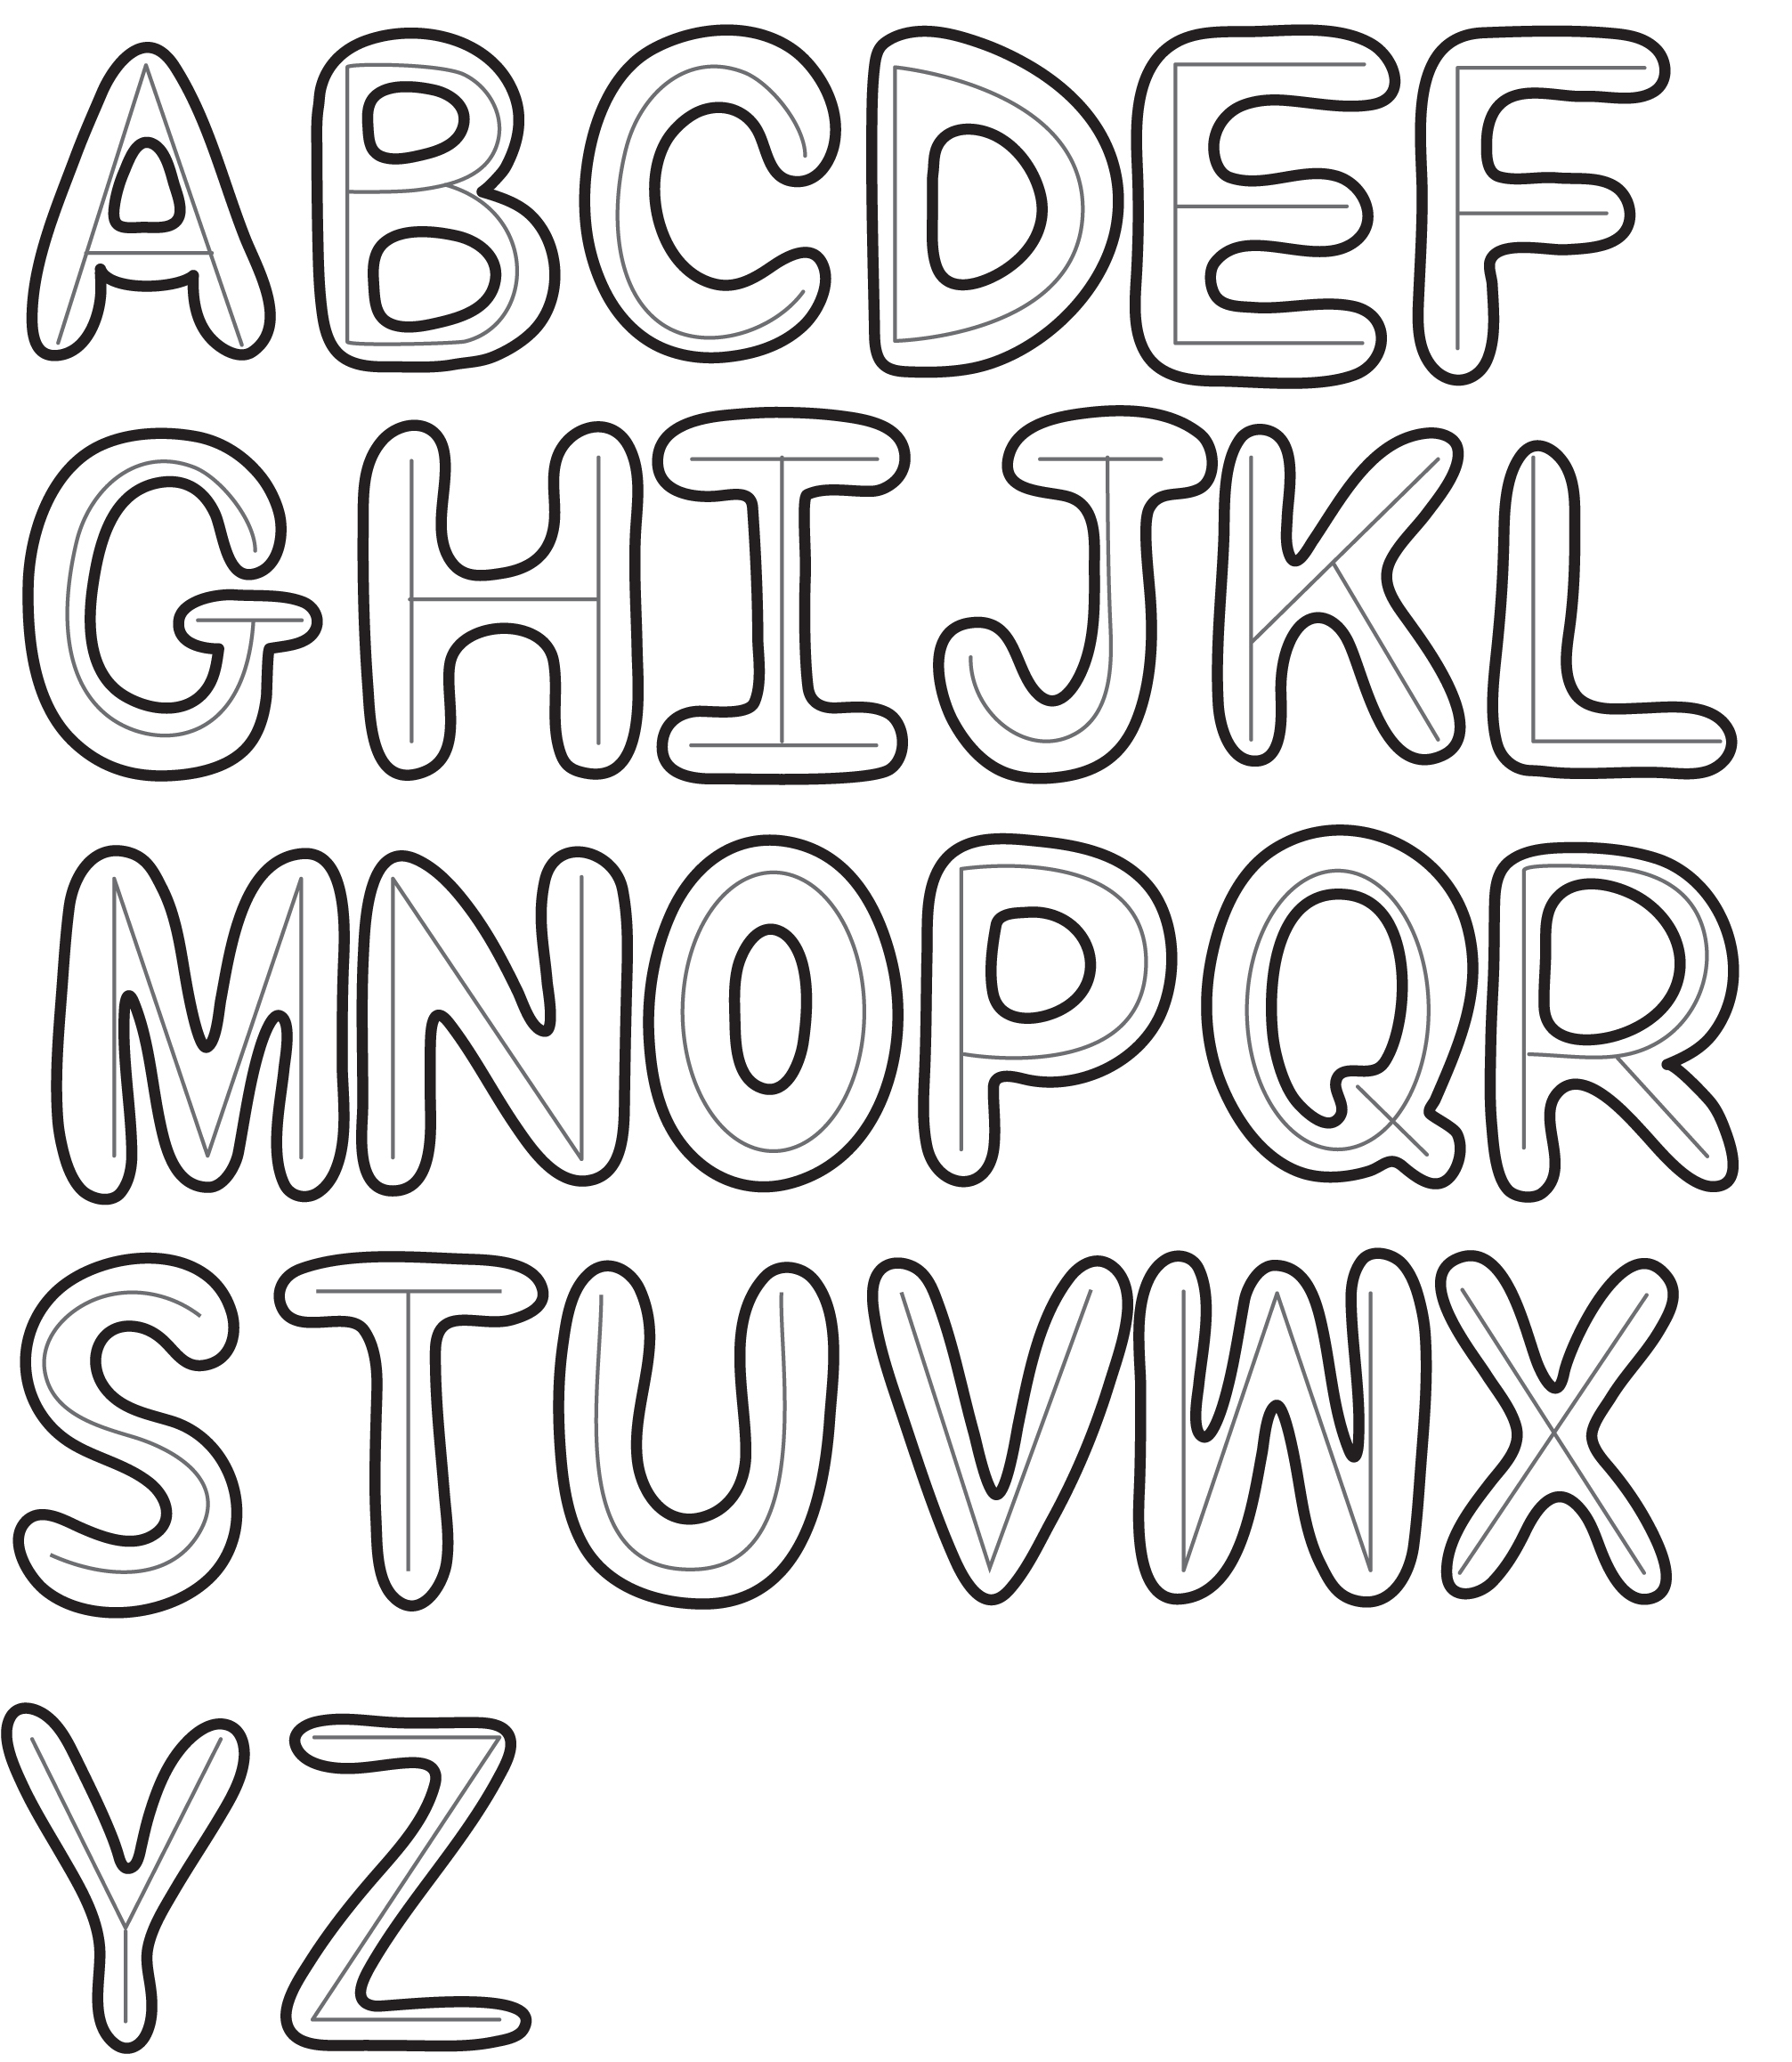 2013x2316 how to draw cool letters a z step by step a to z 3d letter drawing